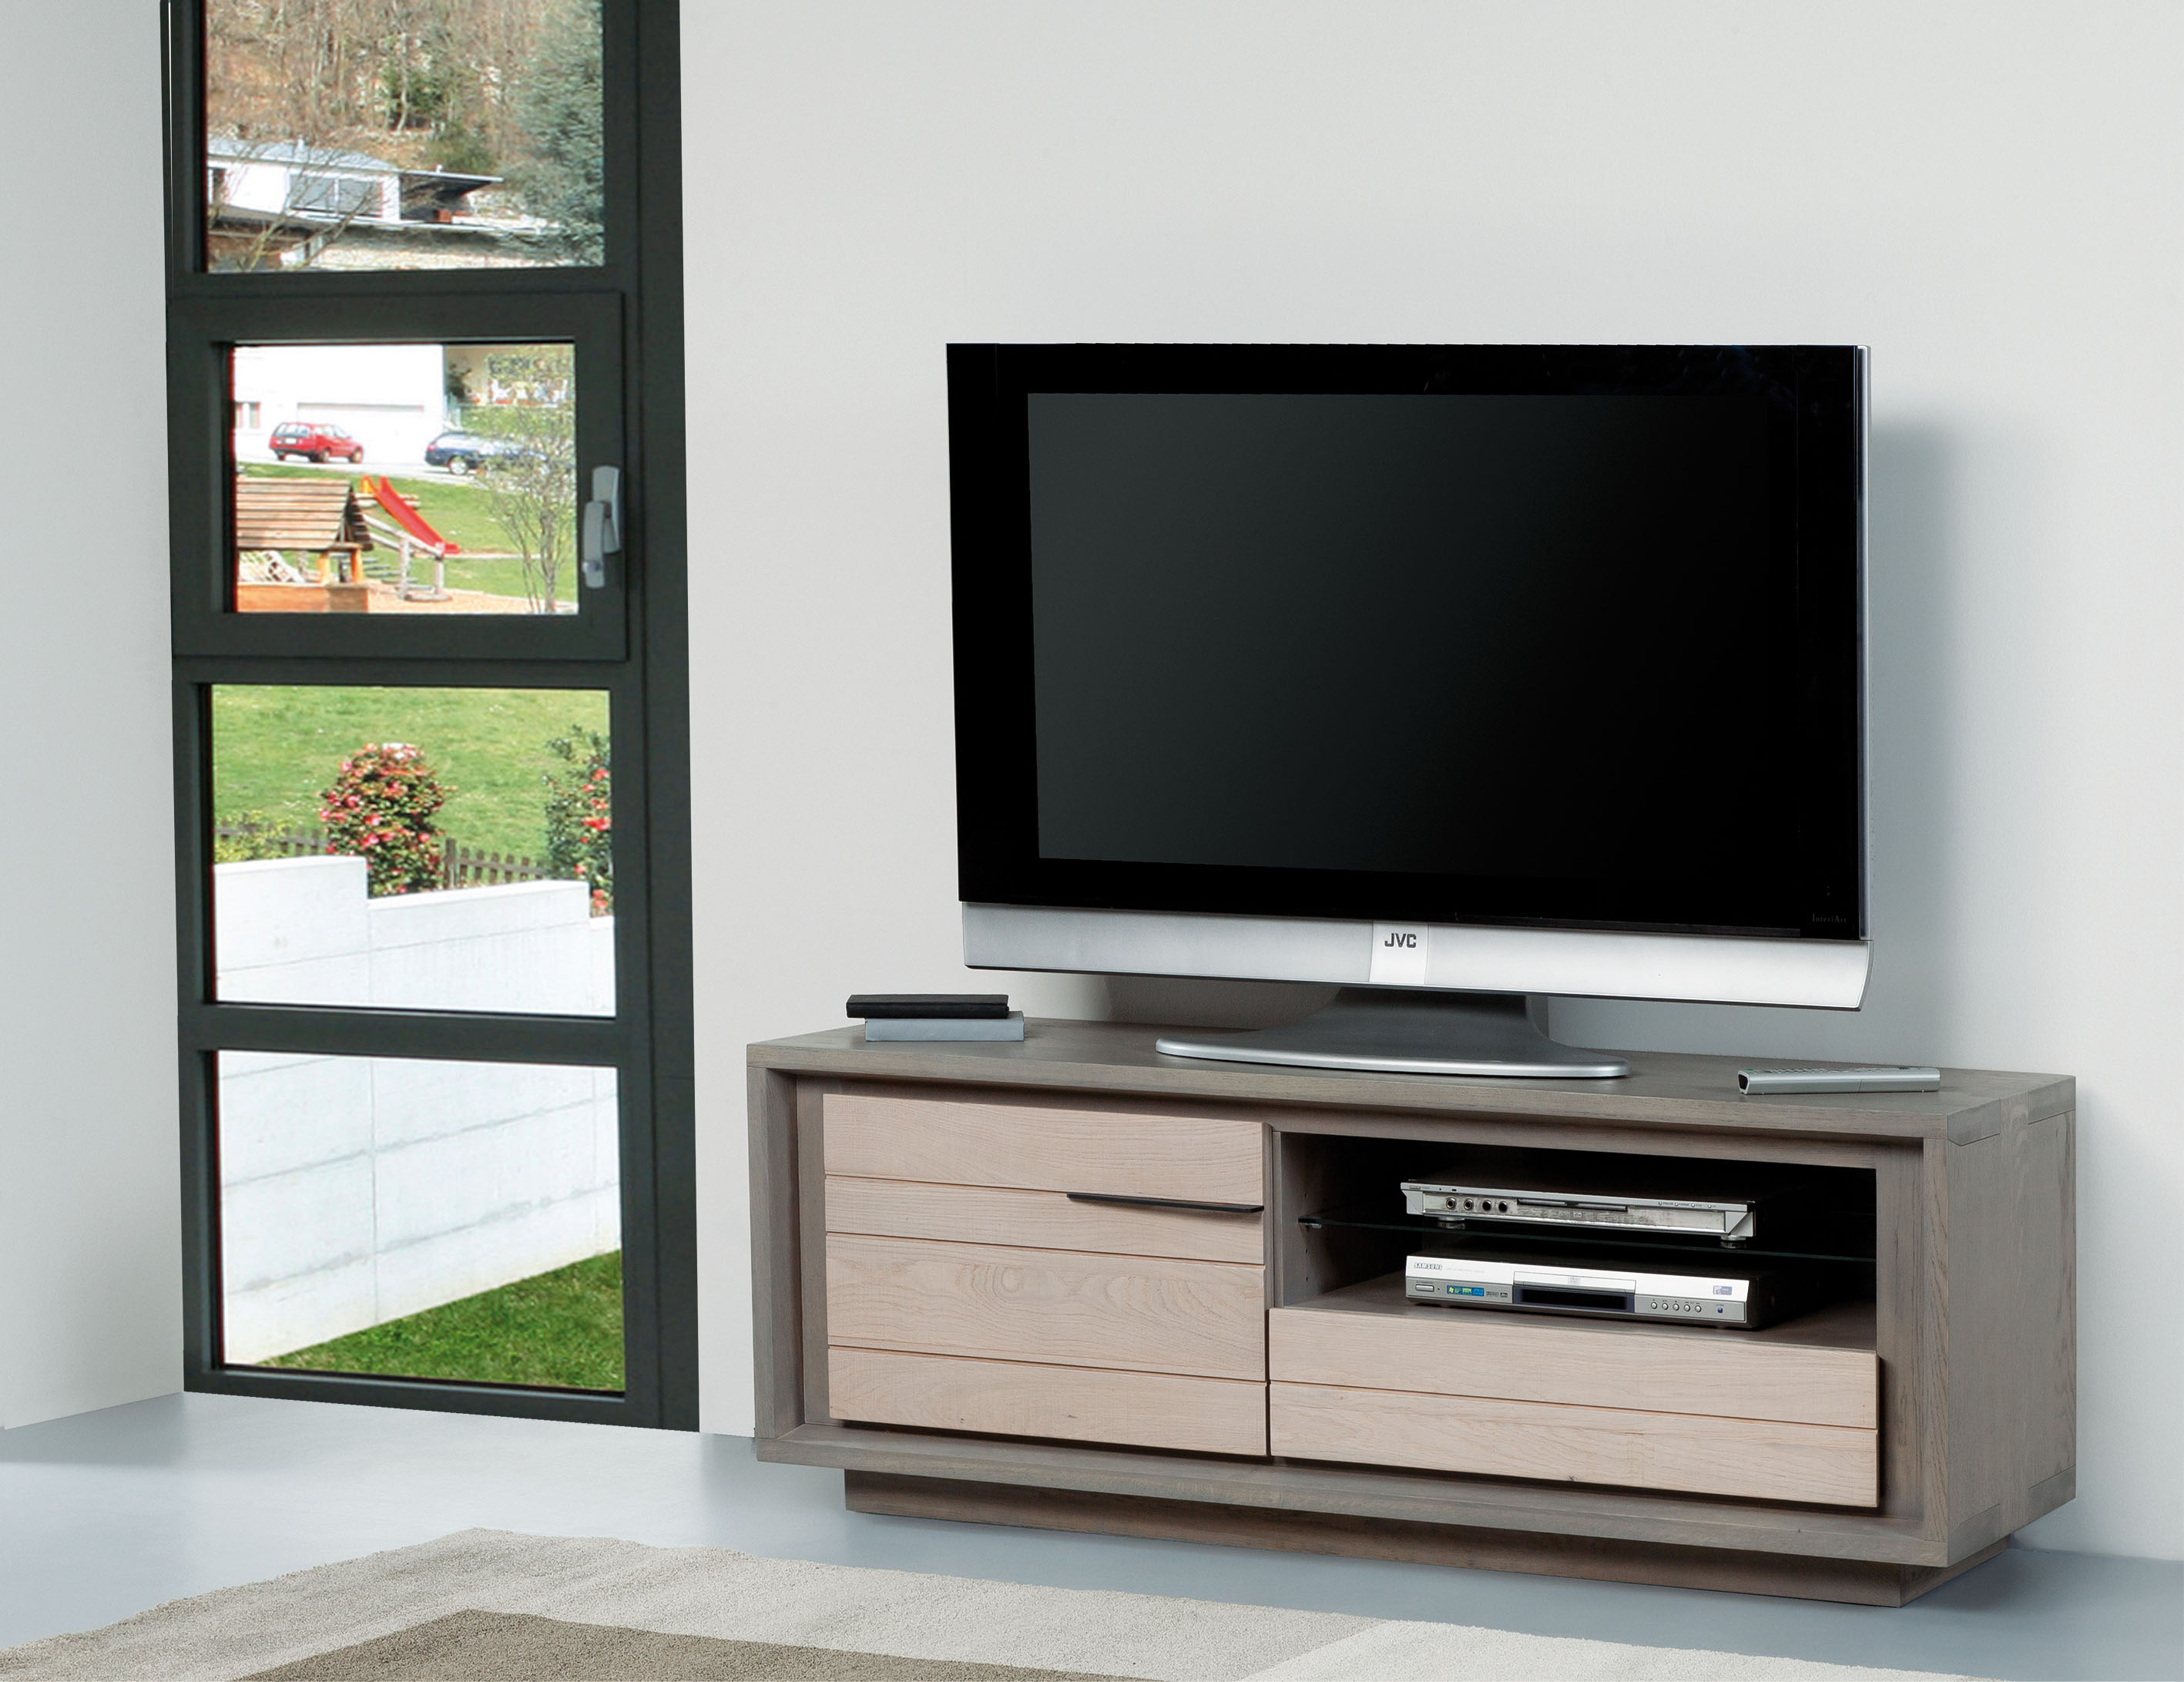 Meubles turone meuble tv moderne merisier u artzeincom for Meuble turone